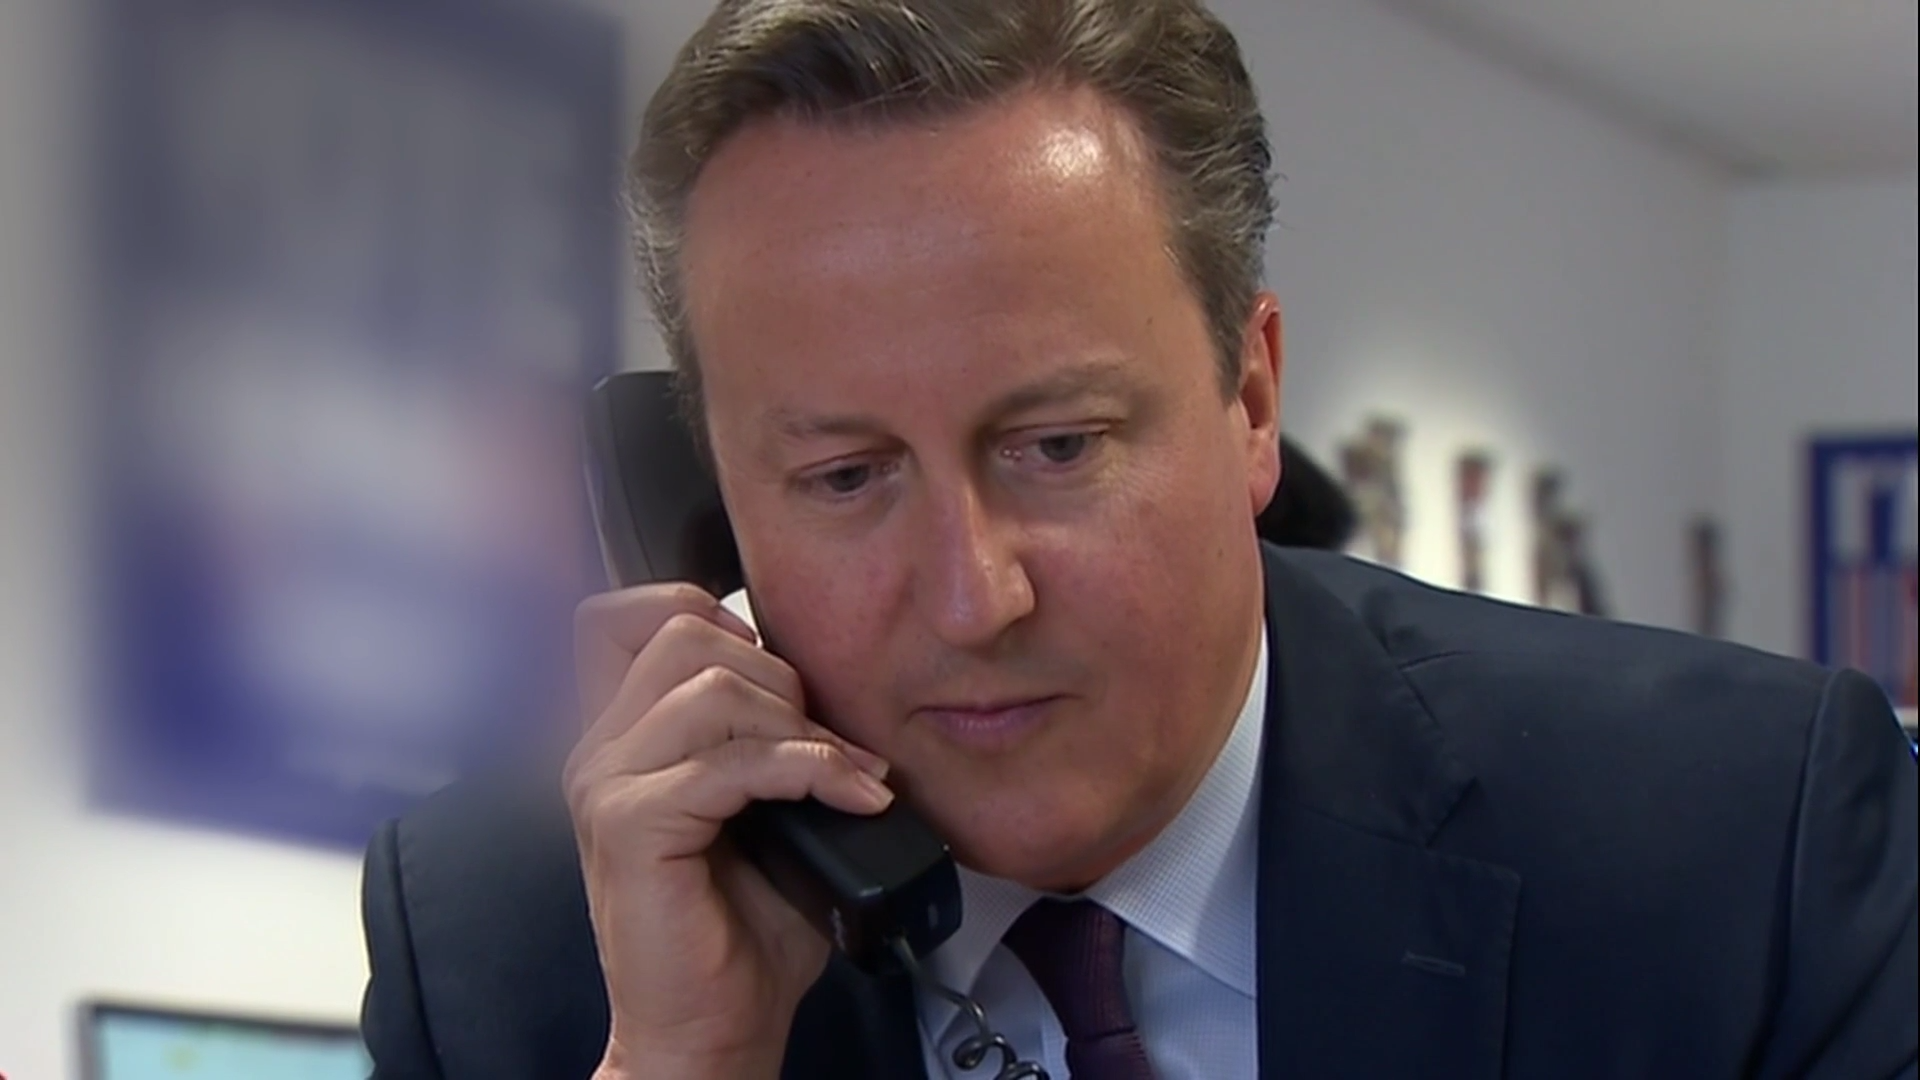 David Cameron's attempts to lobby top officials on behalf of Greensill revealed - channel 4